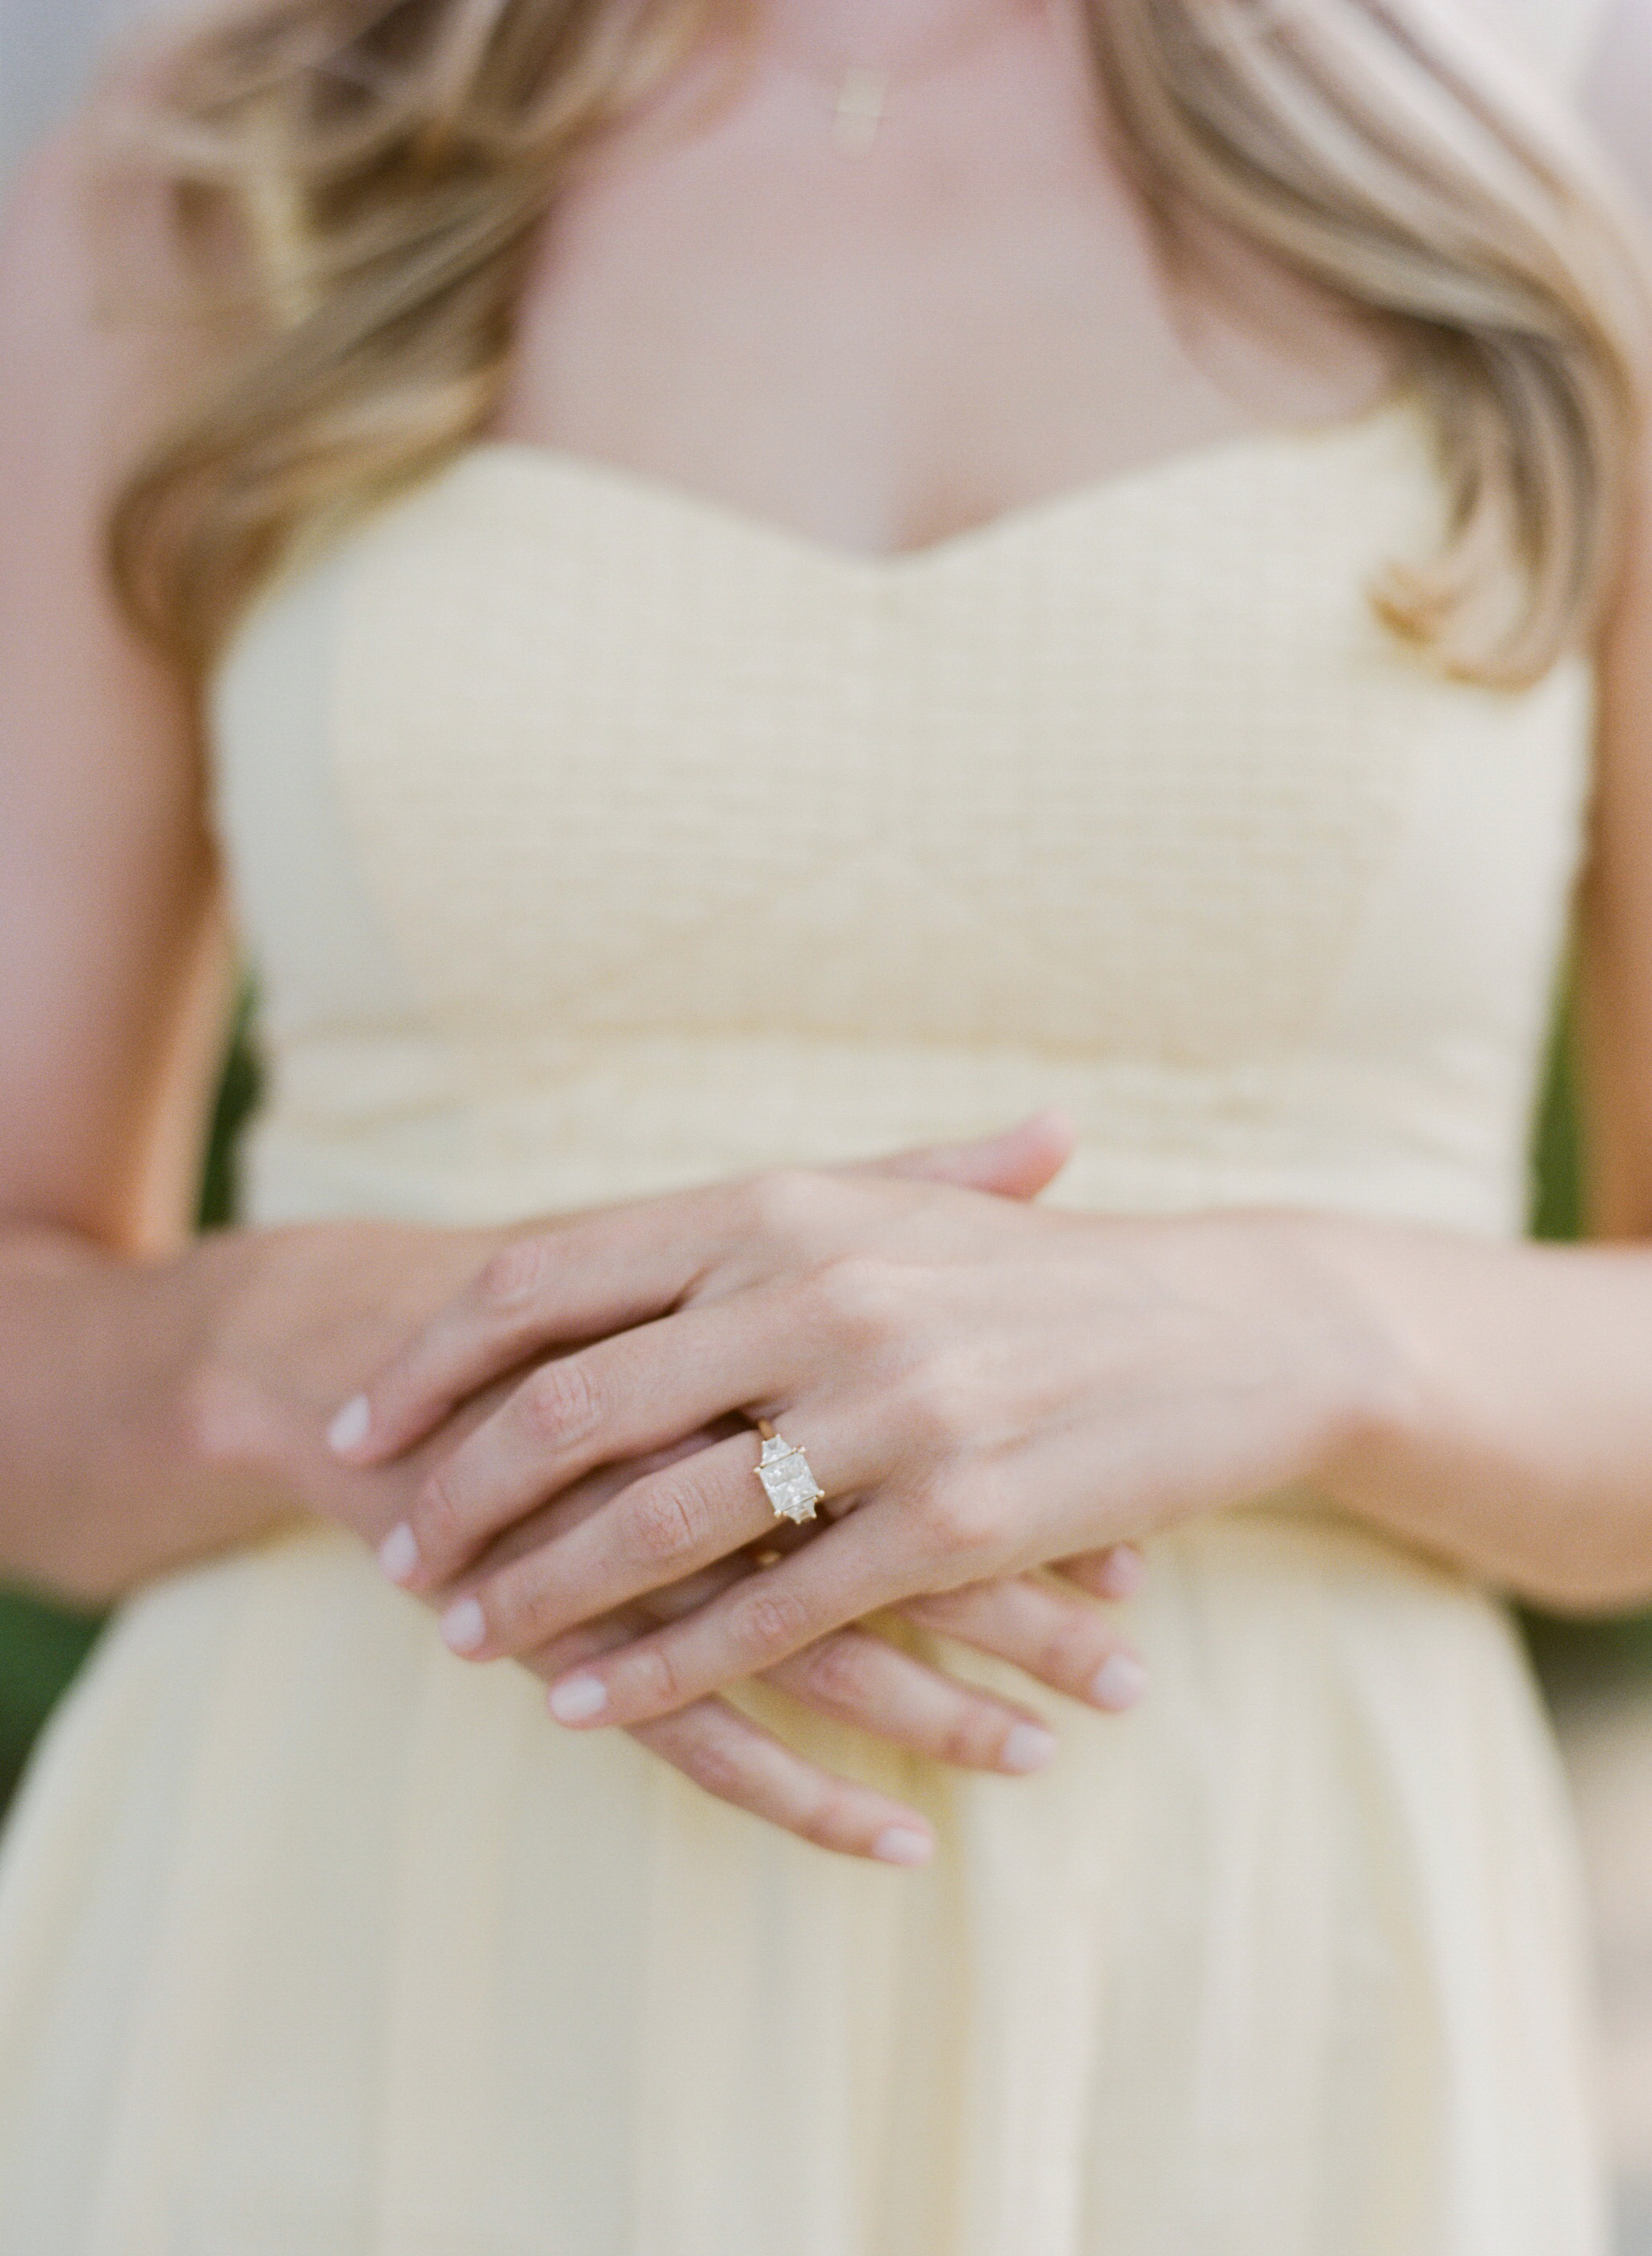 A bride-to-be shows off her engagement ring  during an engagement session with Sylvie Gil at a Napa Valley winery.